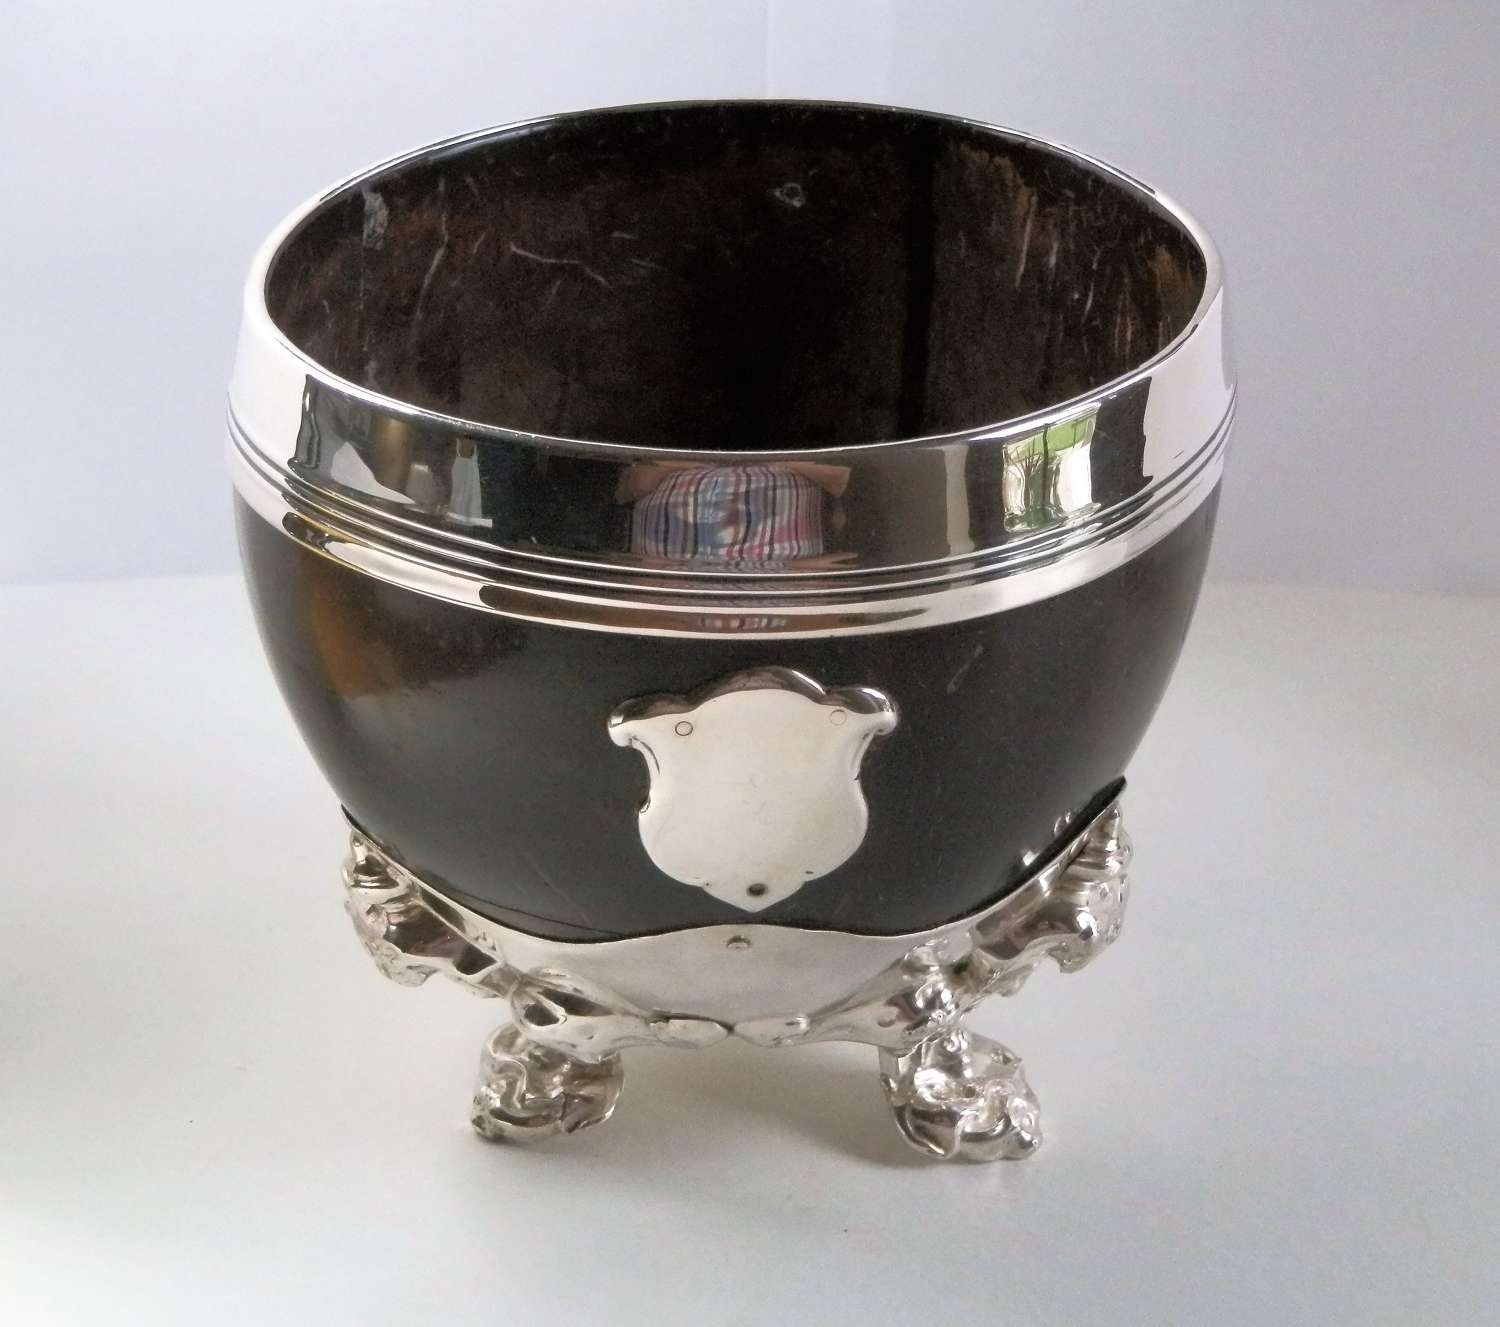 Victorian silver coconut cup, Sheffield 1852